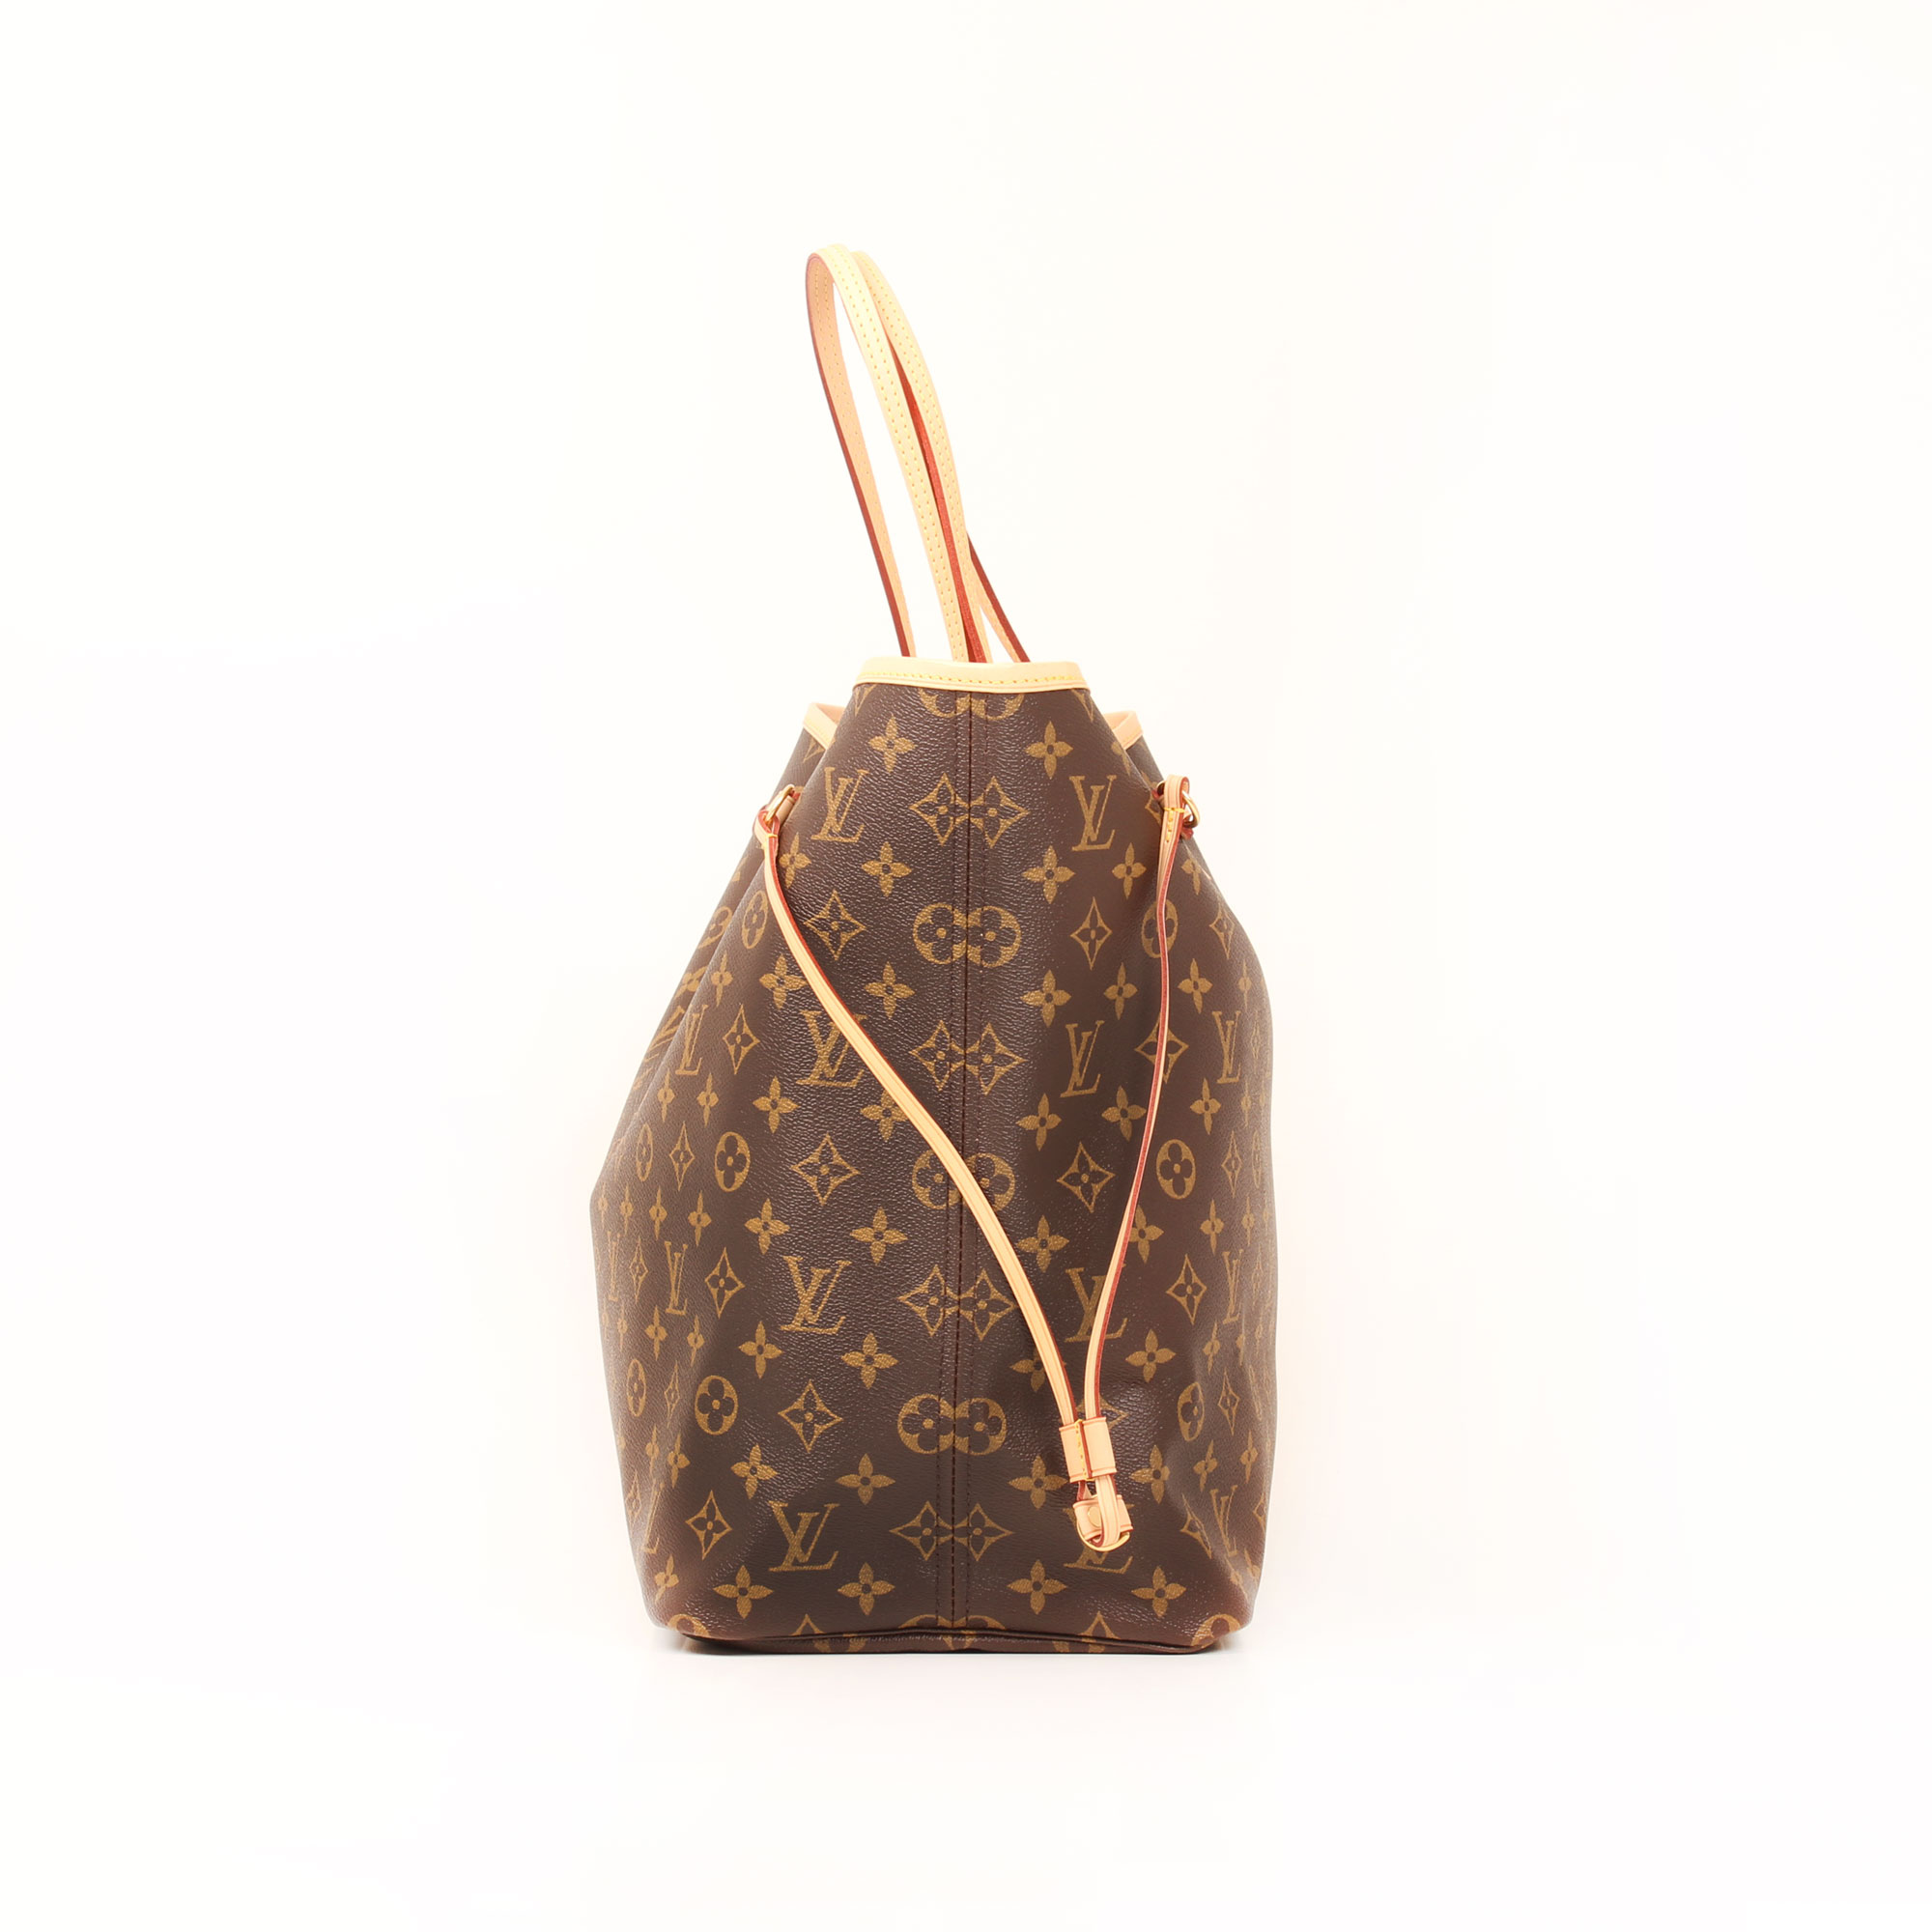 bolso-louis-vuitton-neverfull-gm-monogram-nuevo-lateral